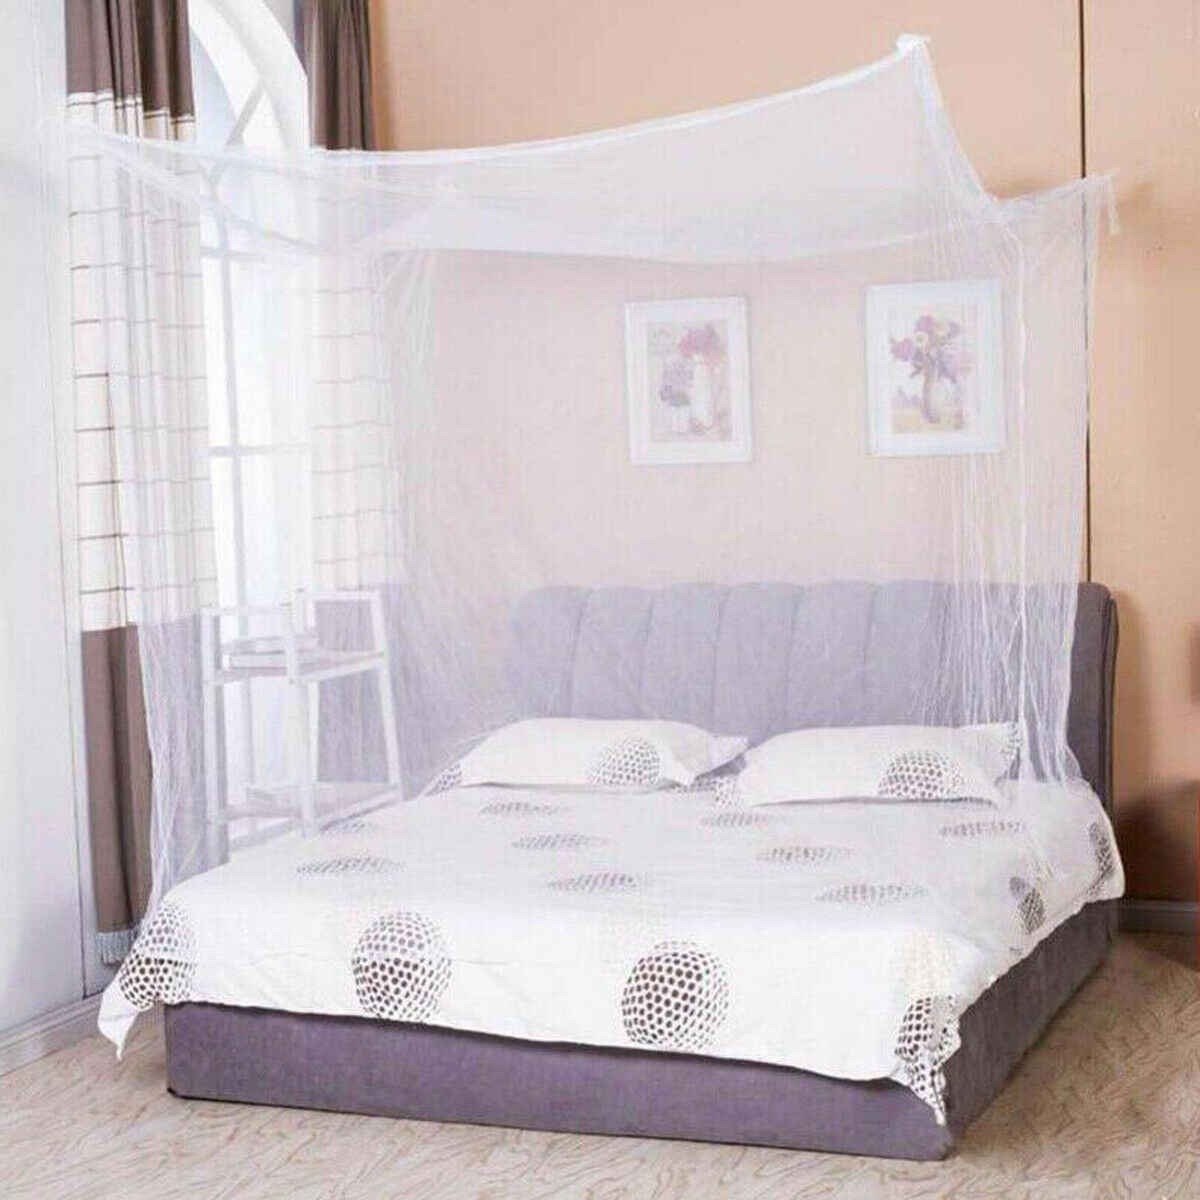 2019 Newest Princess Lace Canopy Mosquito Net Four Corner Post Bug Insect Repeller No Frame Full Queen King Size Bed Mosquito